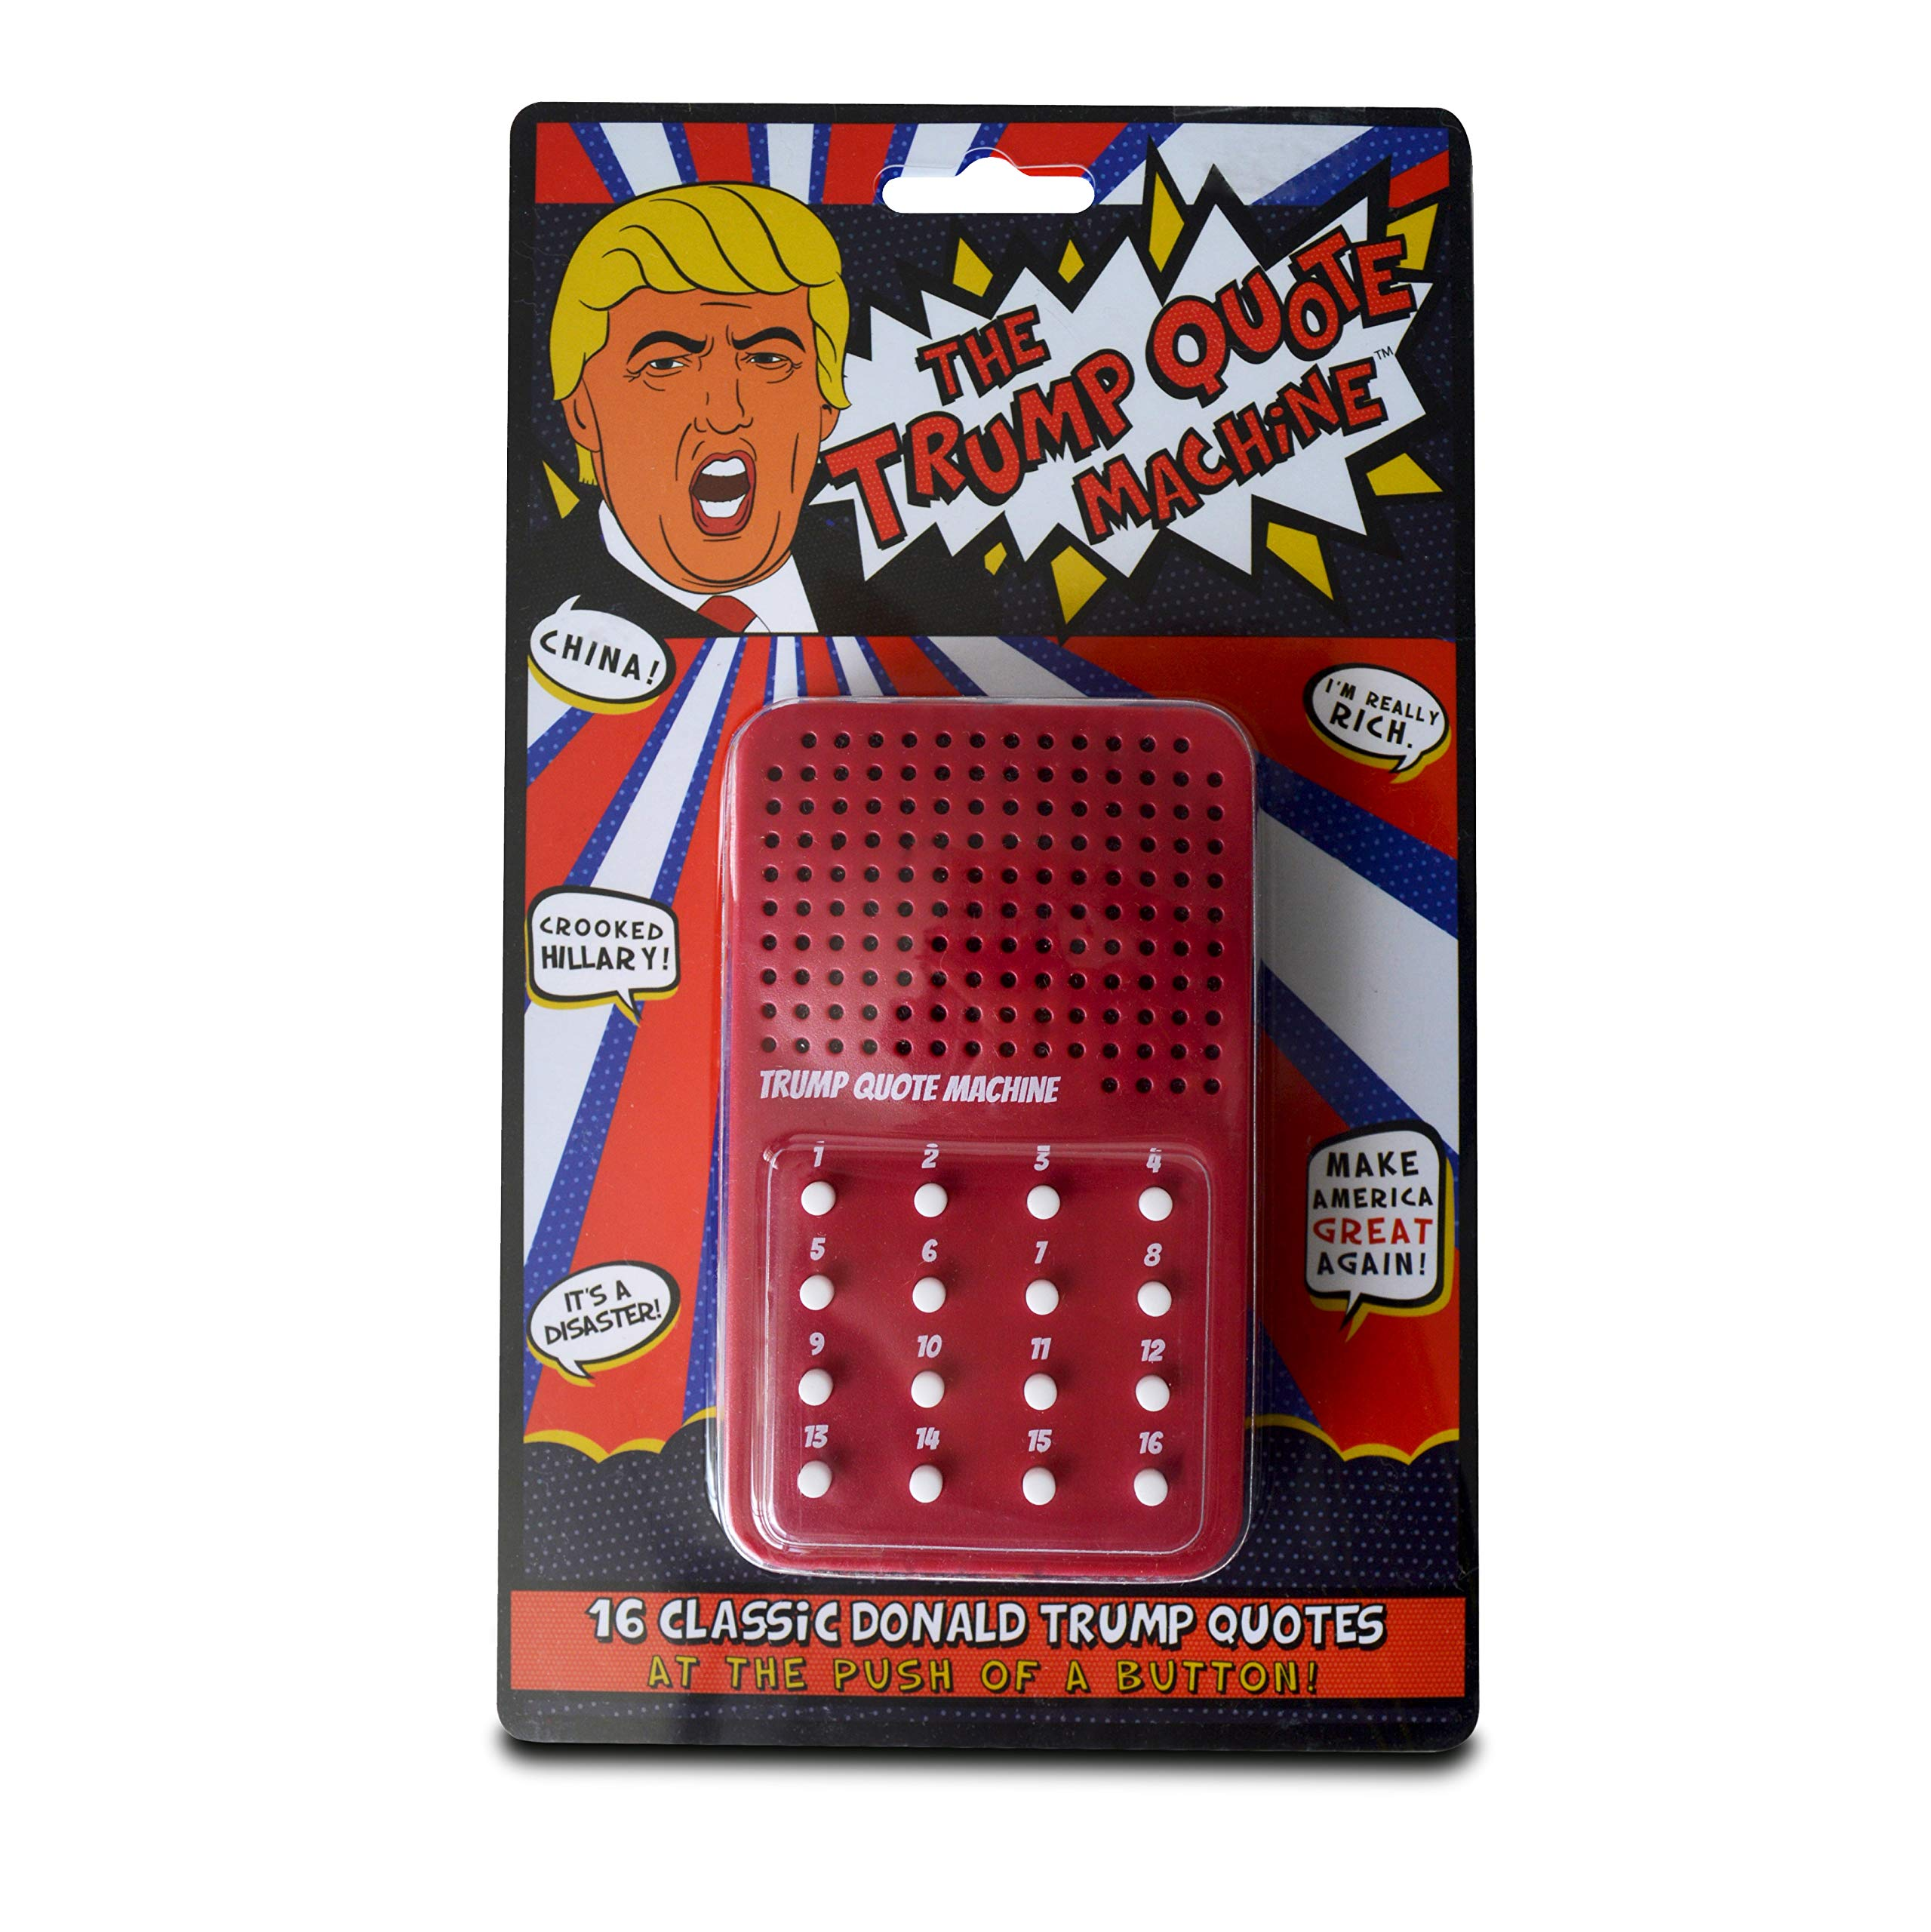 Trump Gag Gift - The Donald Trump Quote Machine - 16 Classic Quotes, One-Liners & Maga Brilliance from President Trump Himself - A Funny Gag Gift to Make America Great Again by Greenacre Brands